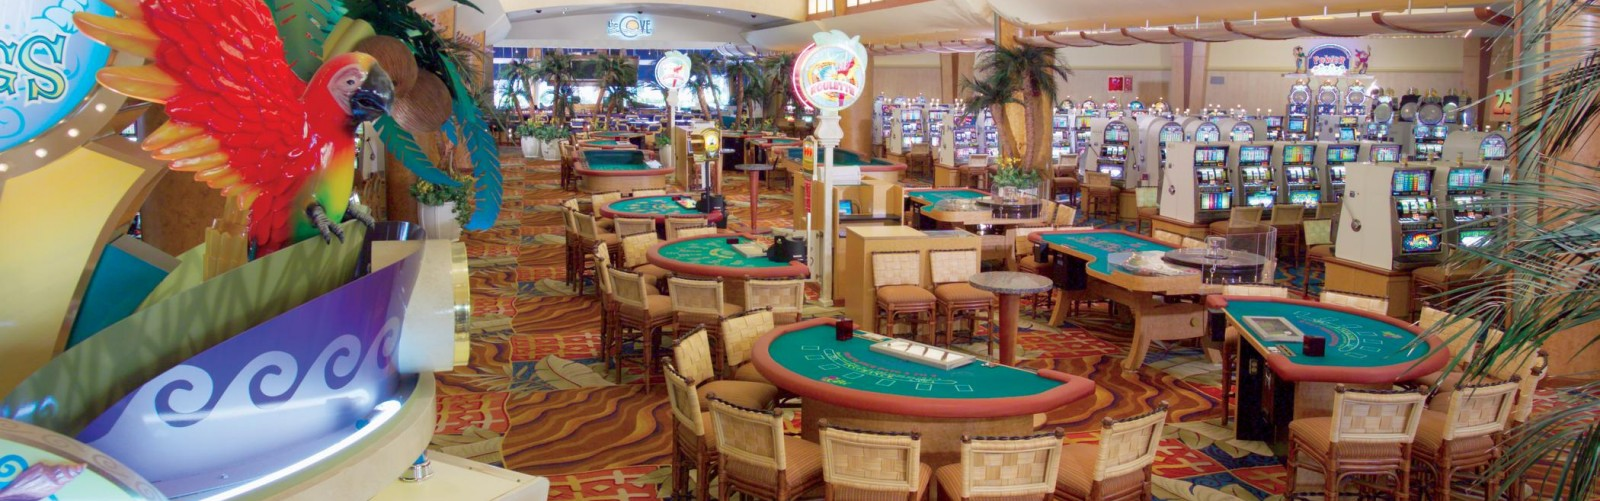 Grand Bahamas Casinos